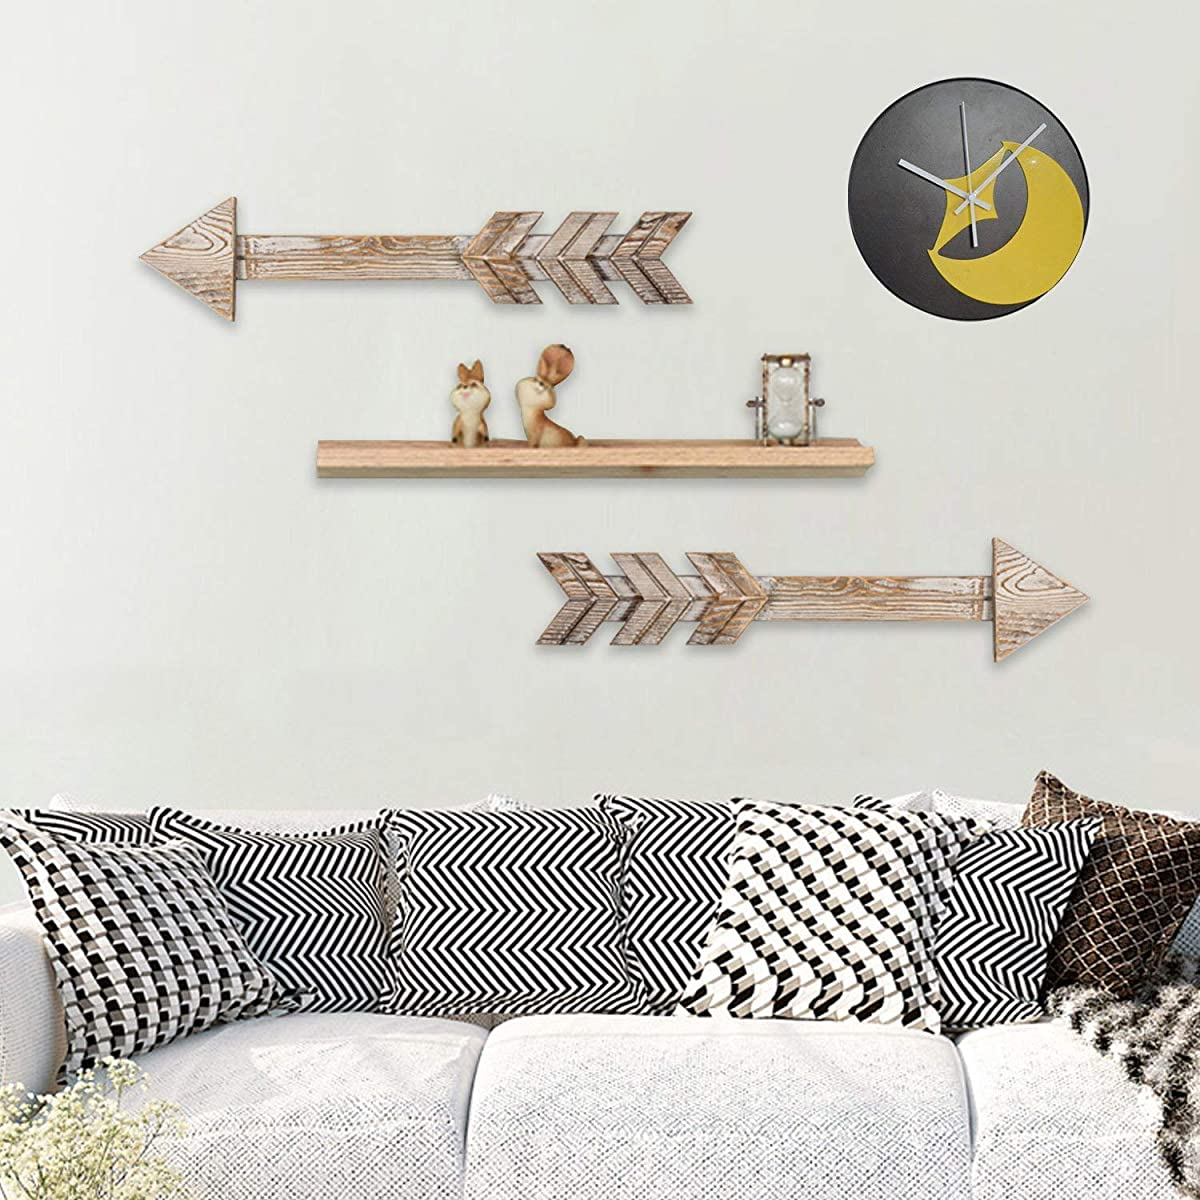 TIMEYARD Arrow Decor, Set of 2 Arrows, Rustic Wood Arrow Sign Wall Decor - Decorative Farmhouse Home Wall Hanging Decor